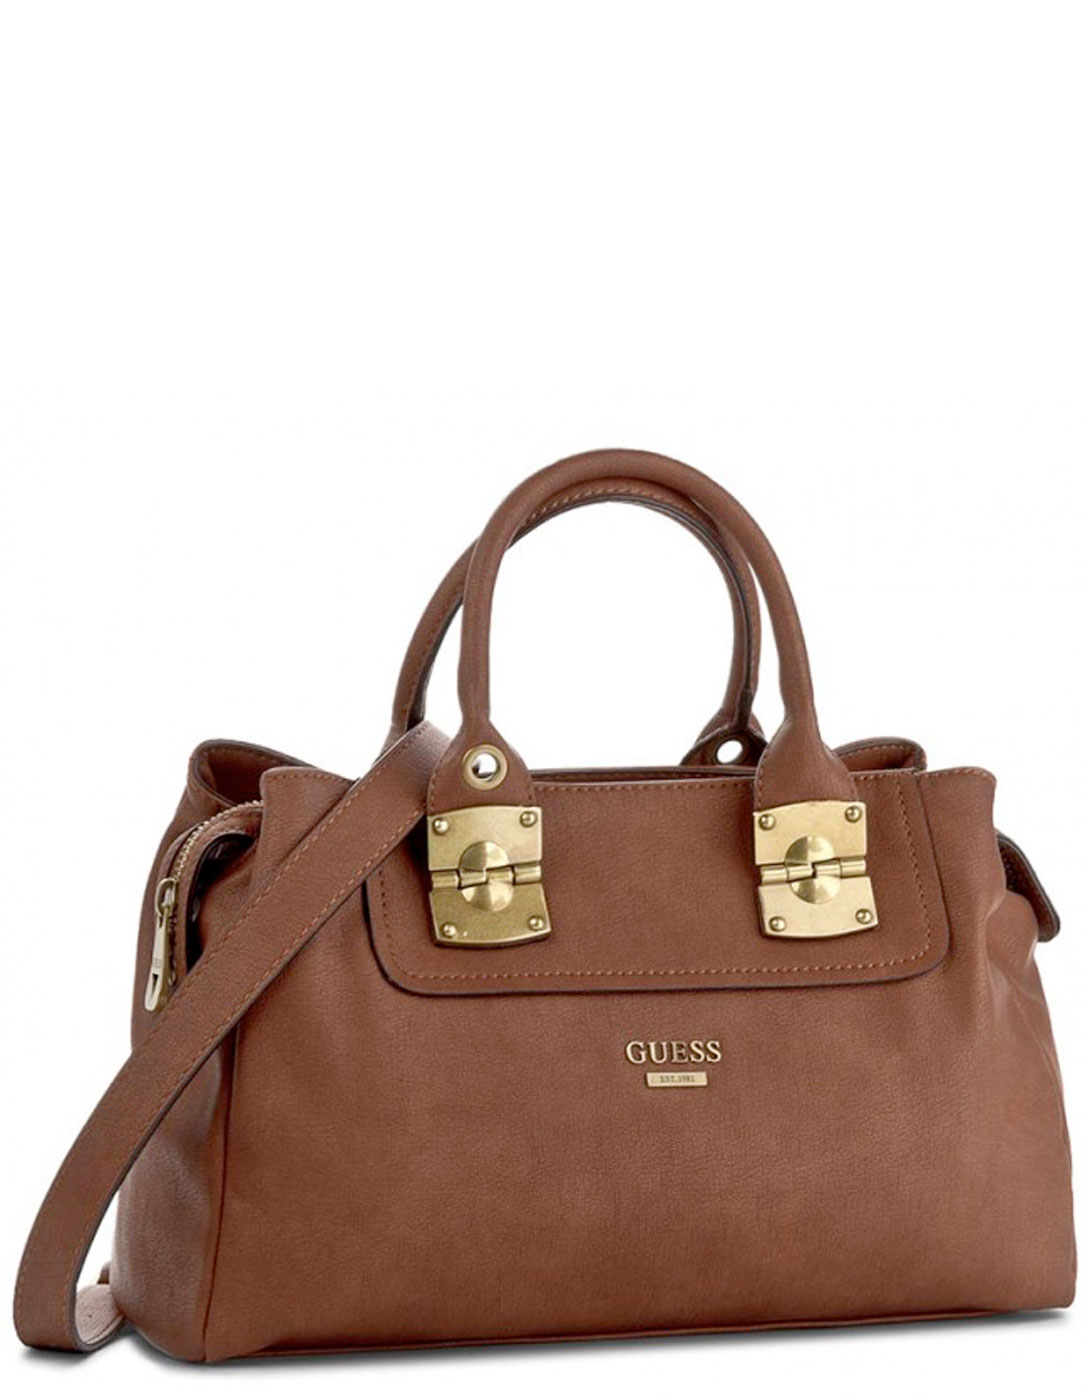 Guess brown bag Frankee on Aliexpress.com